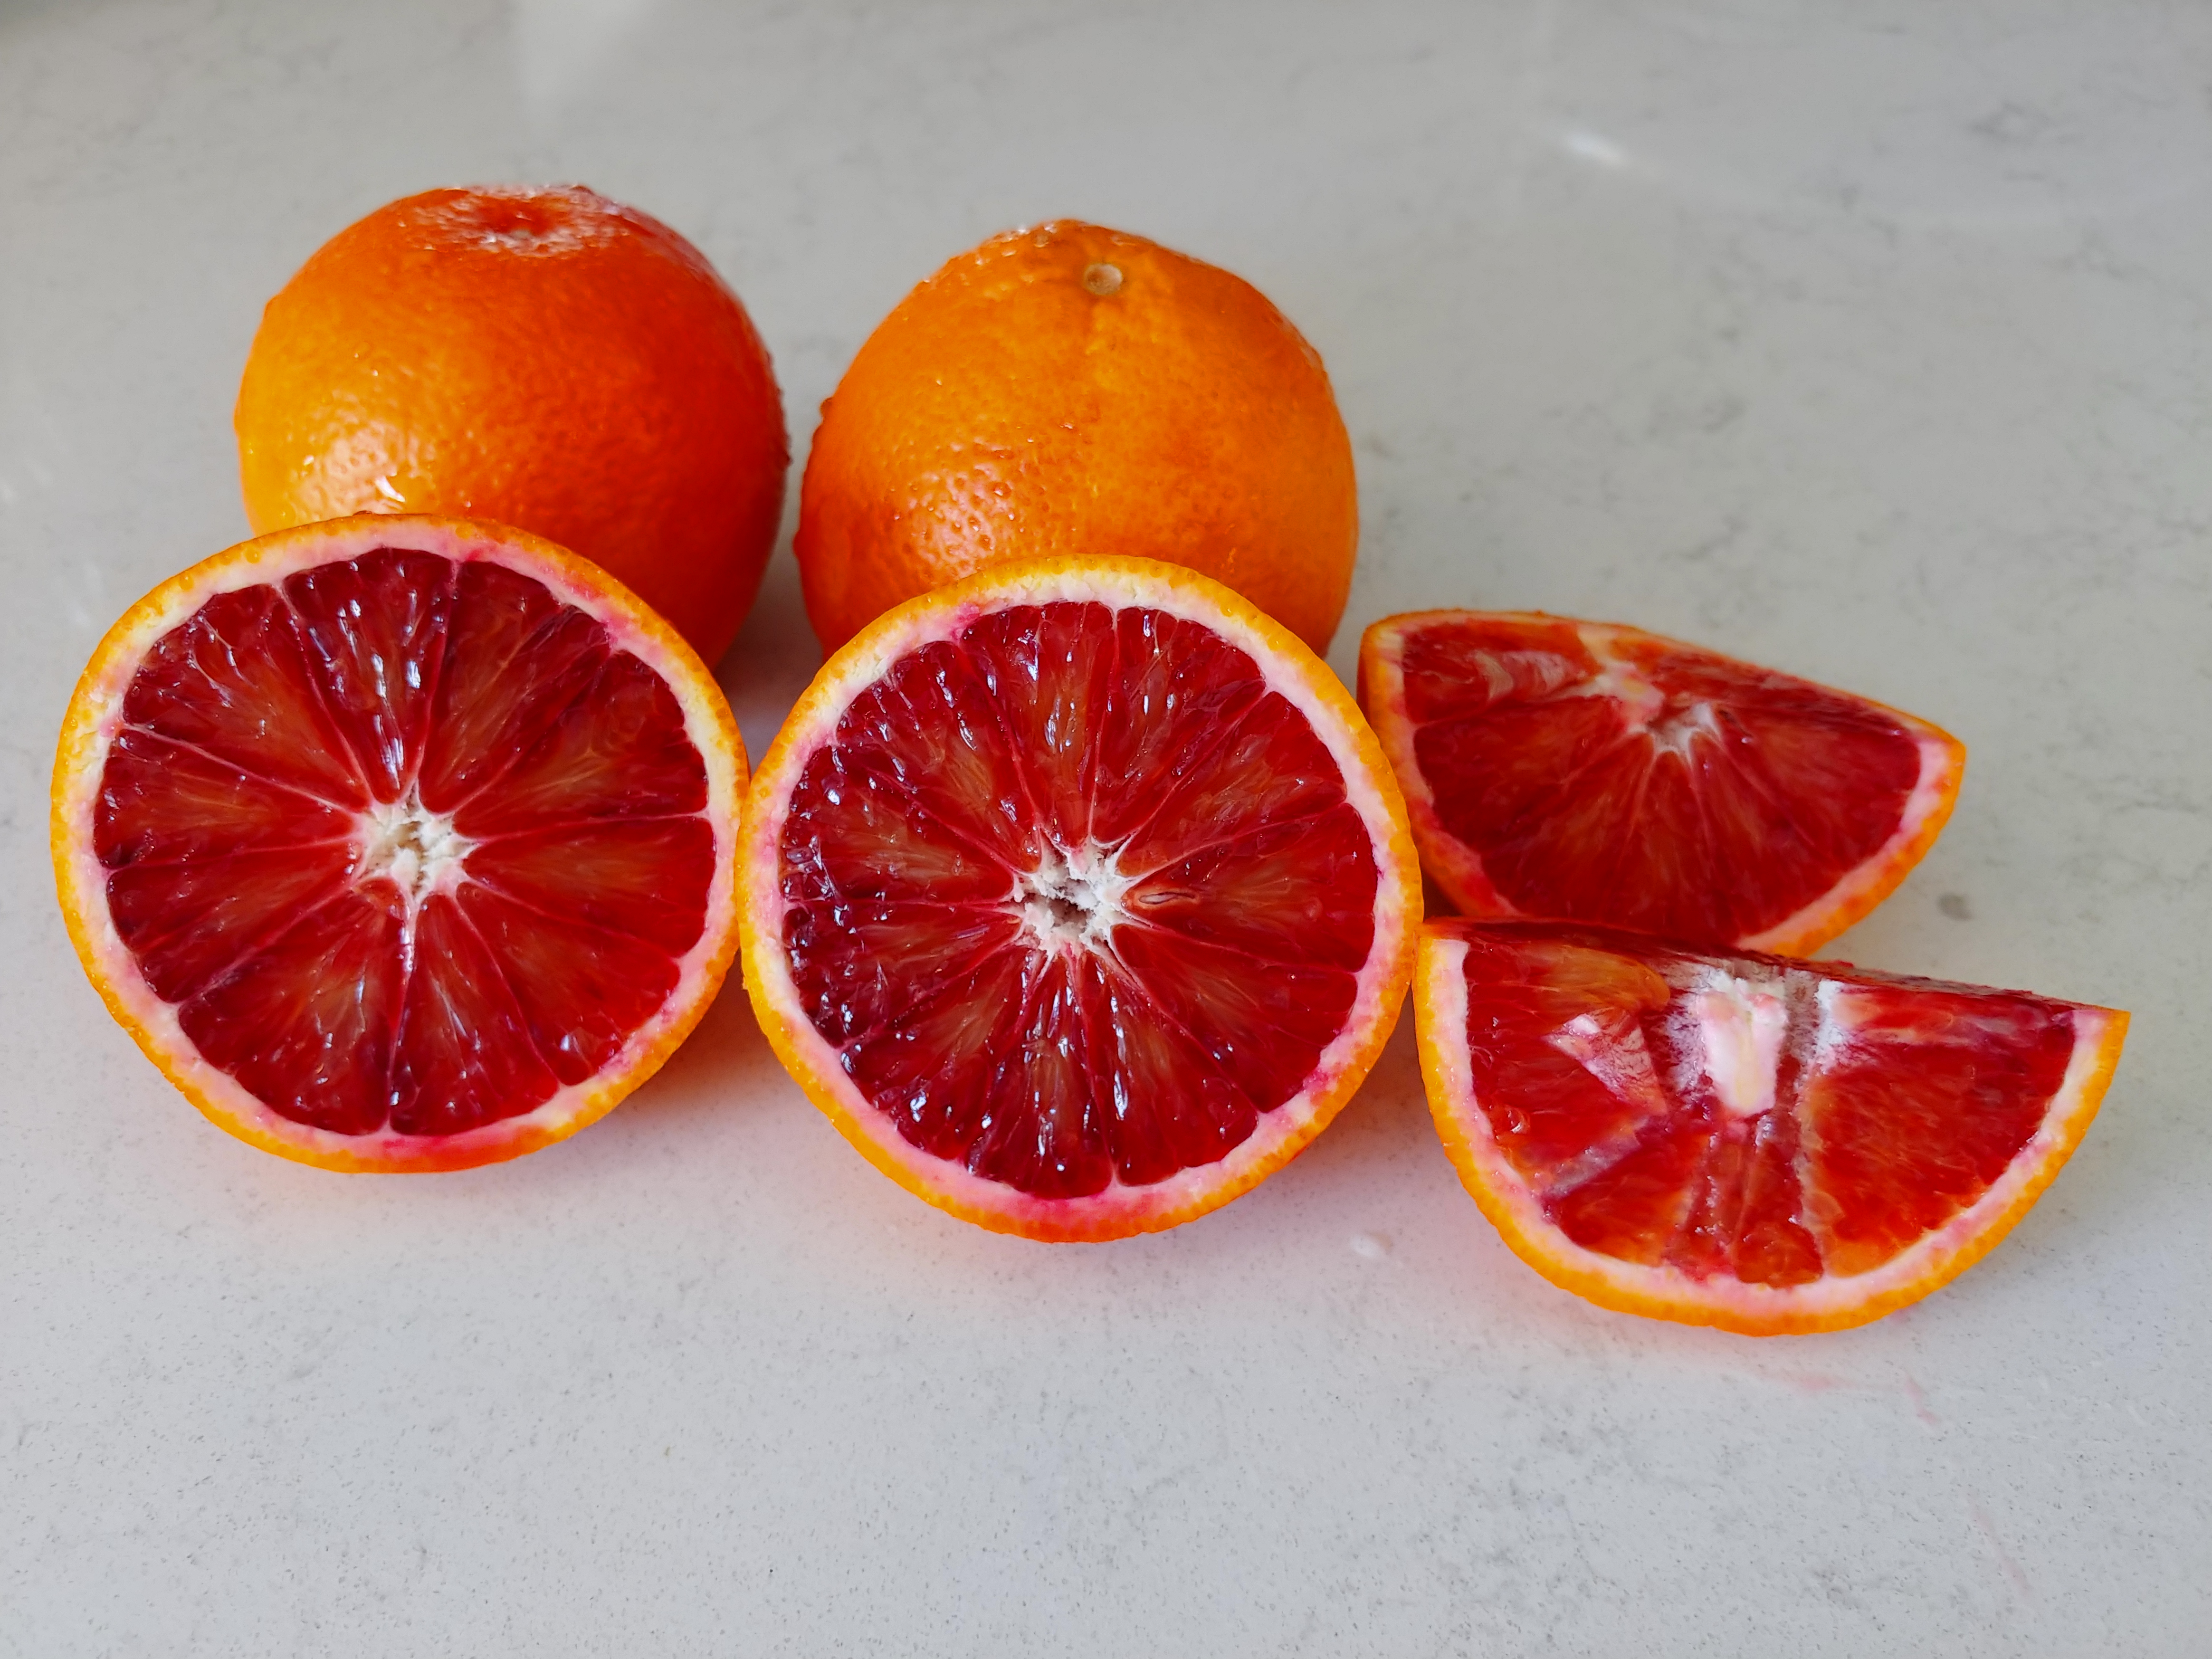 Blood orange rounds and slices